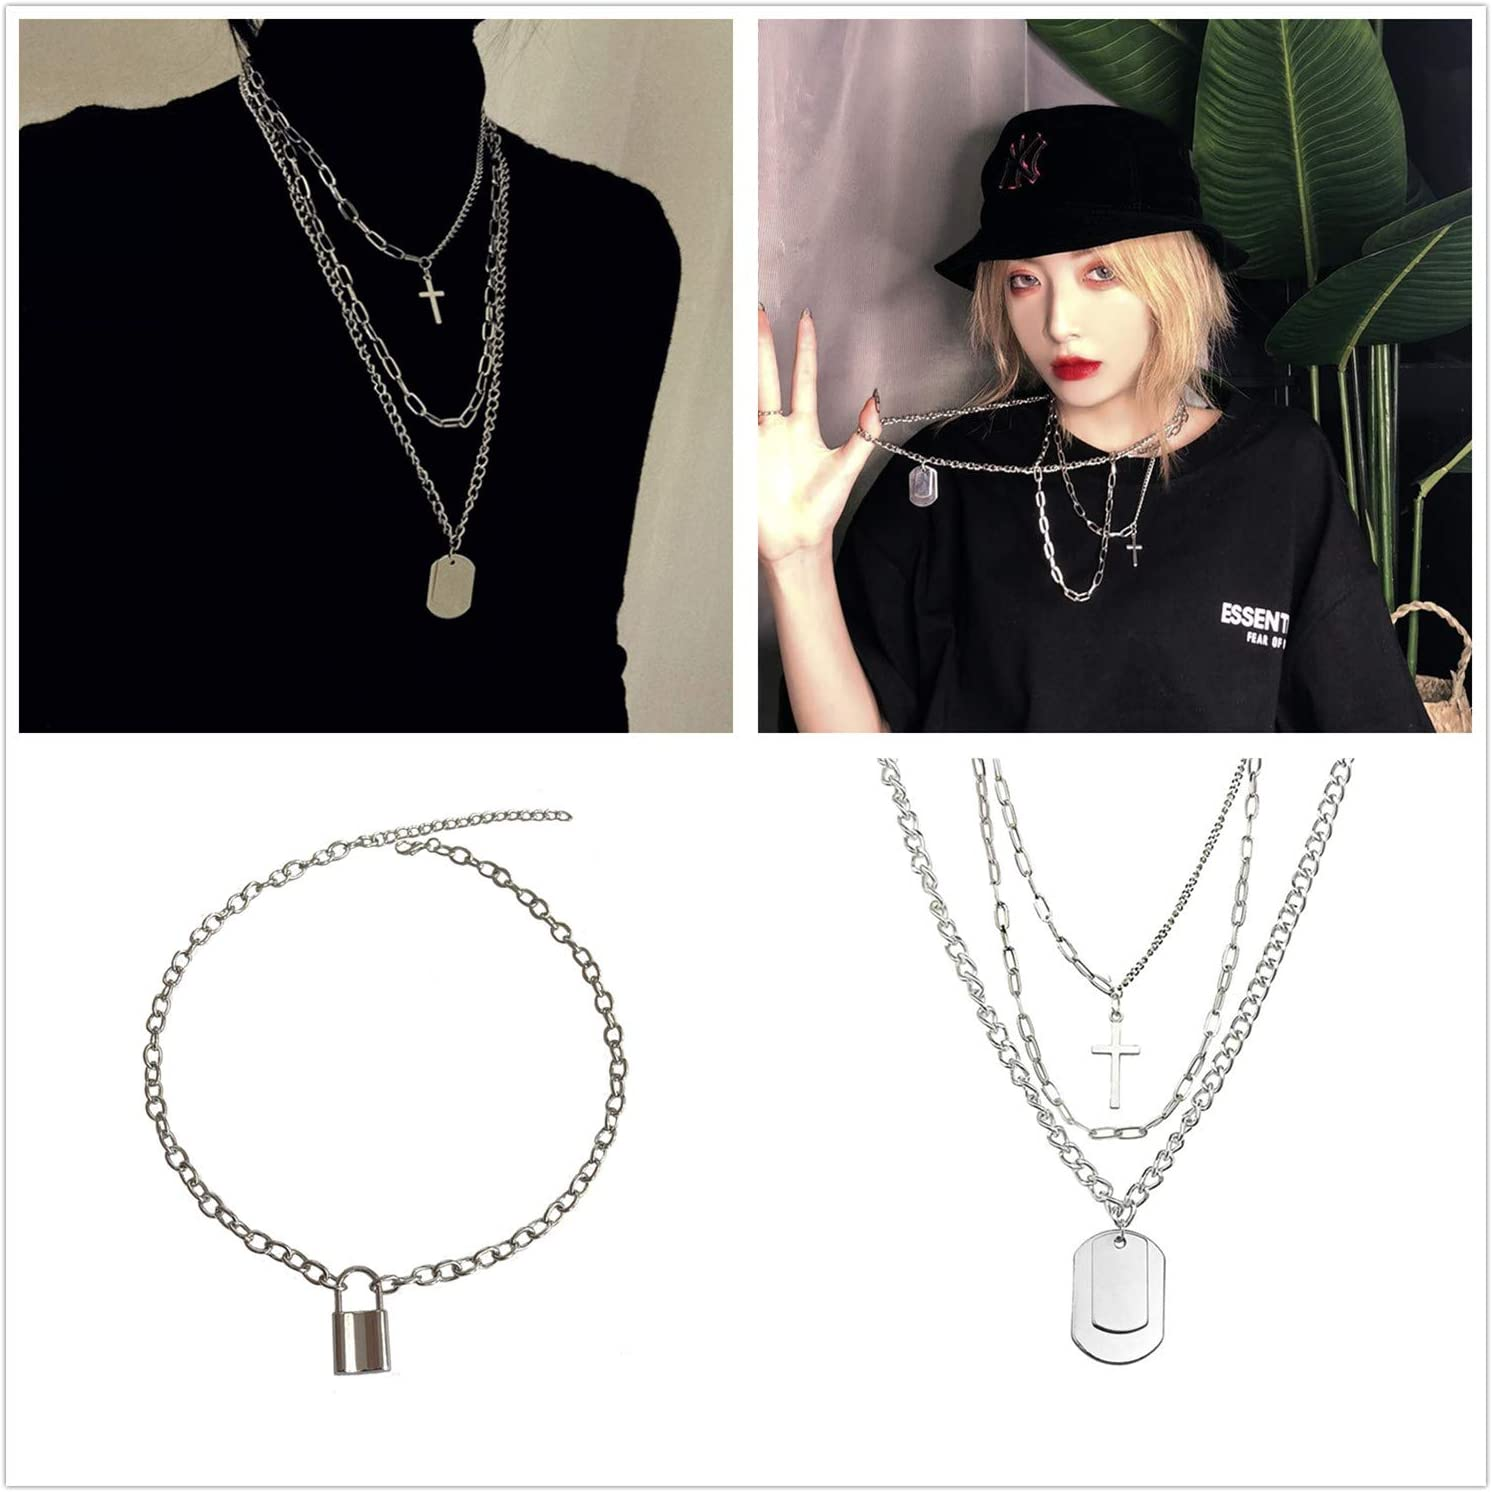 PPX 4 Pcs Lock Pendant Necklace Statement Long Chain Punk Multilayer Choker Necklace for Women Girls and Cross Earrings Set for Men Women with Storage Box